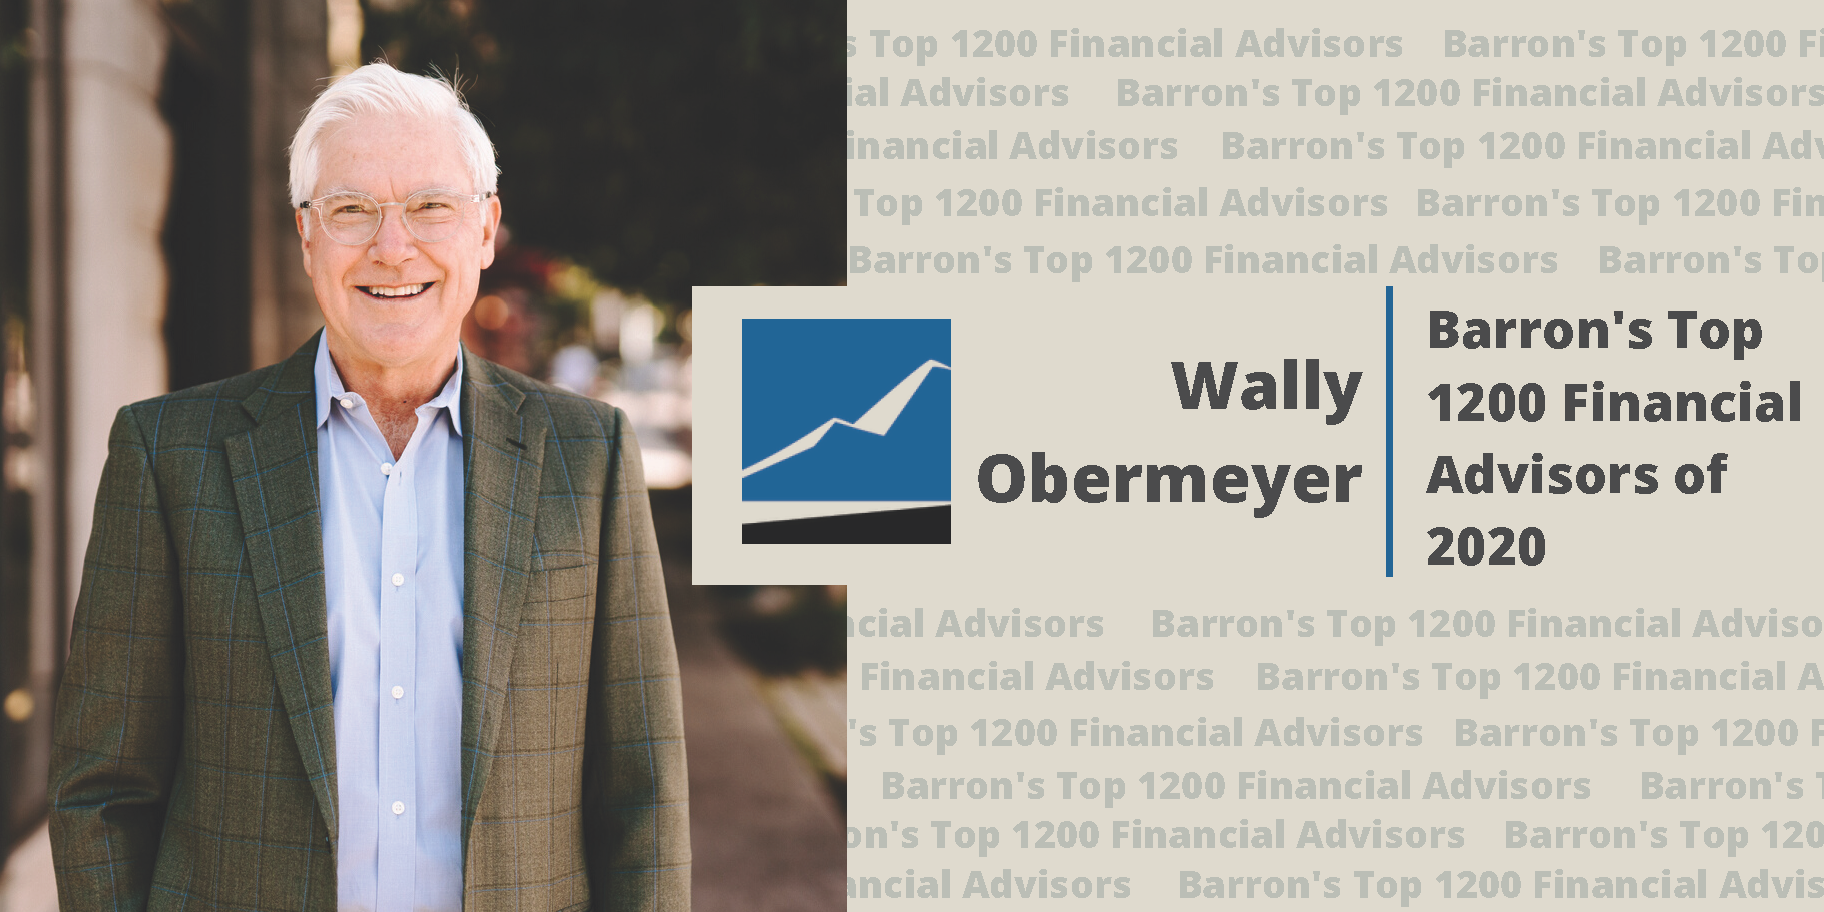 Wally Obermeyer Profiled in Barron's as Obermeyer Wood Investment Counsel Recognized in Top 1200 Advisor Ranking for Ninth Consecutive Year Thumbnail